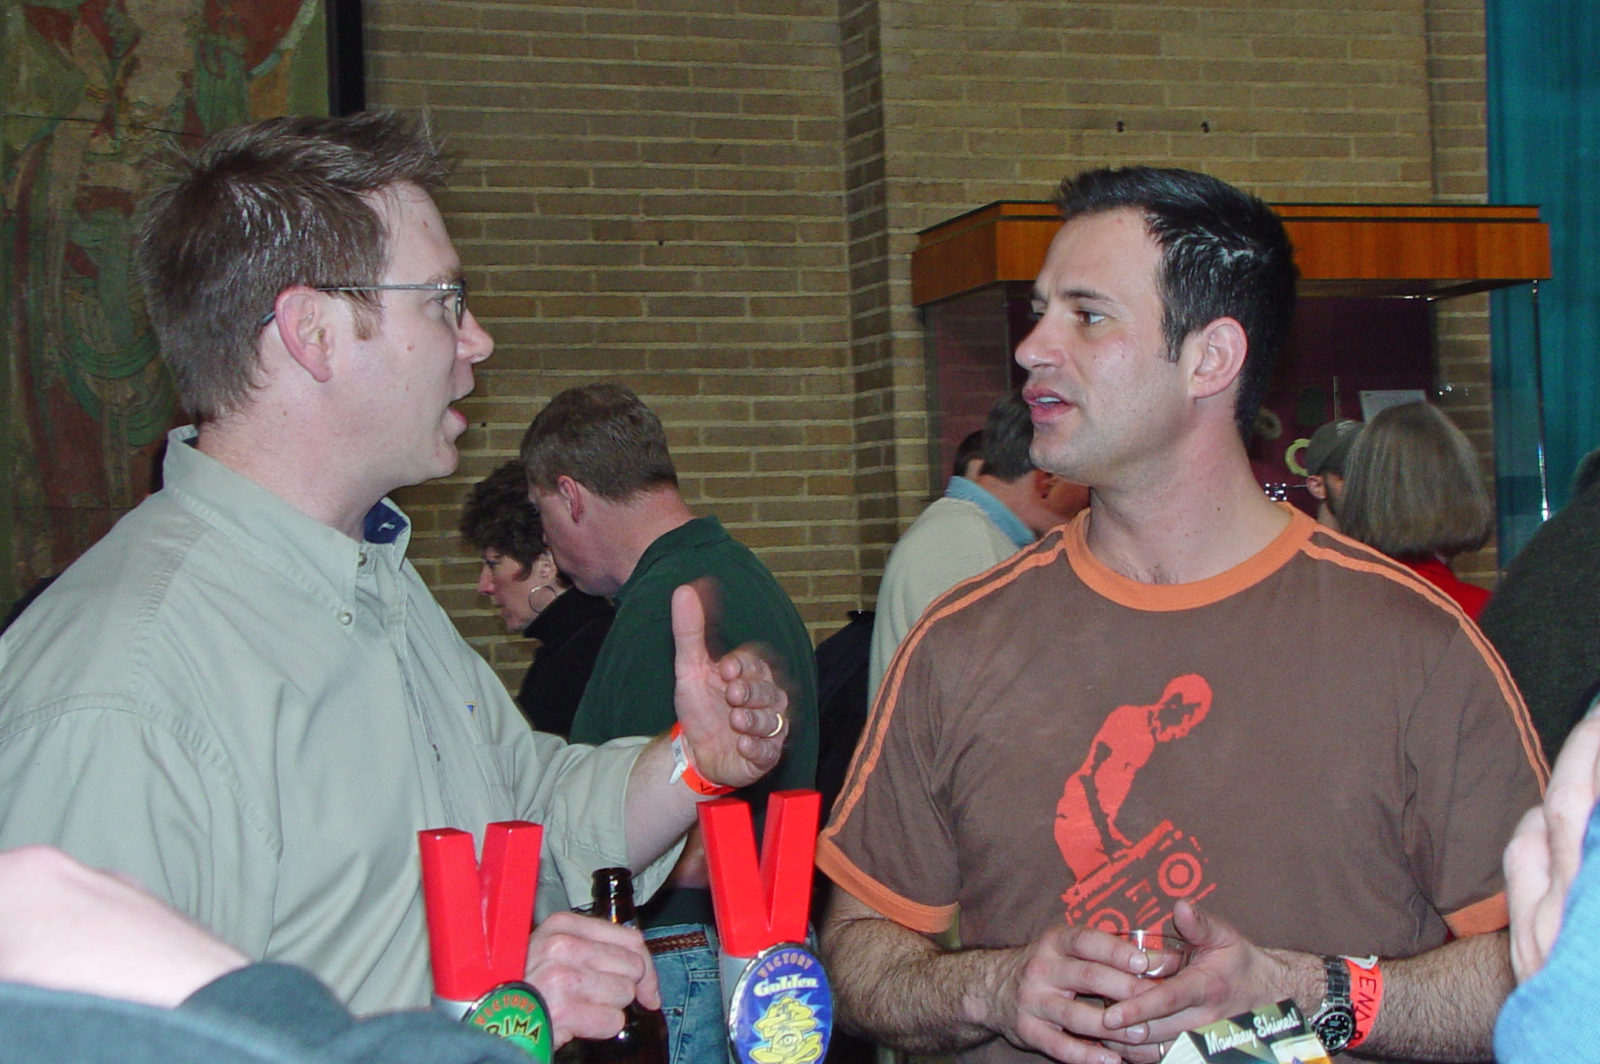 Sam Calagione of Dogfish and Bill Covaleski of Victory, at Penn Beer Tasting